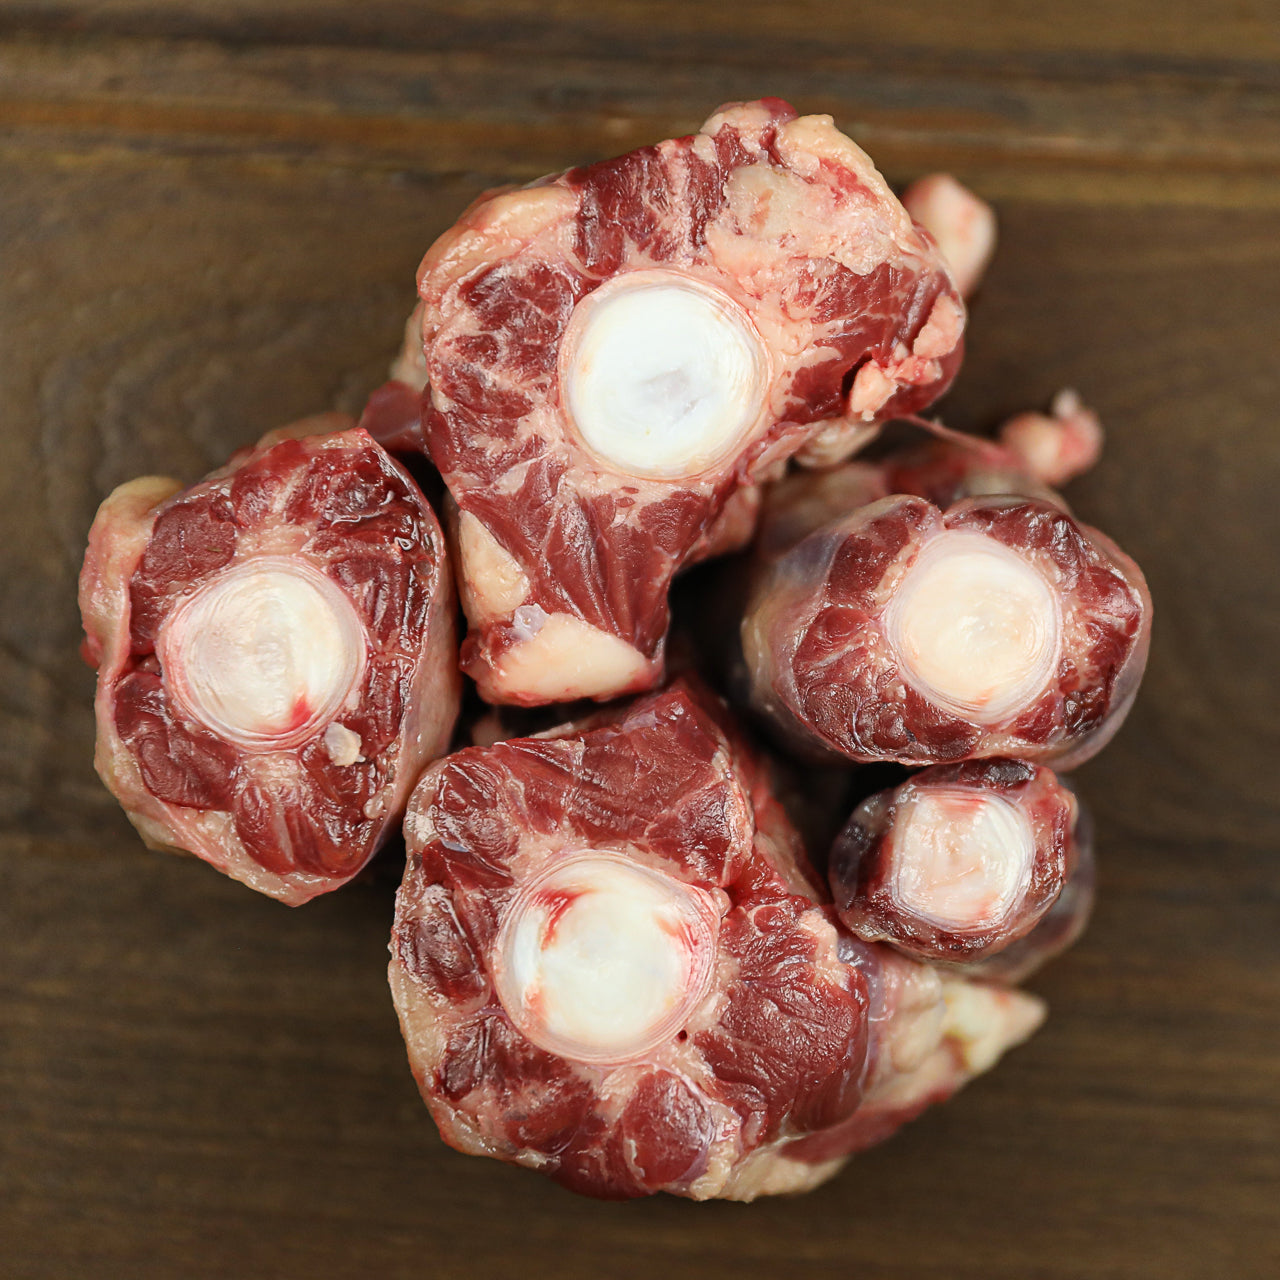 Grass-Fed Grass-Fed Pasture-Finished Beef Oxtail